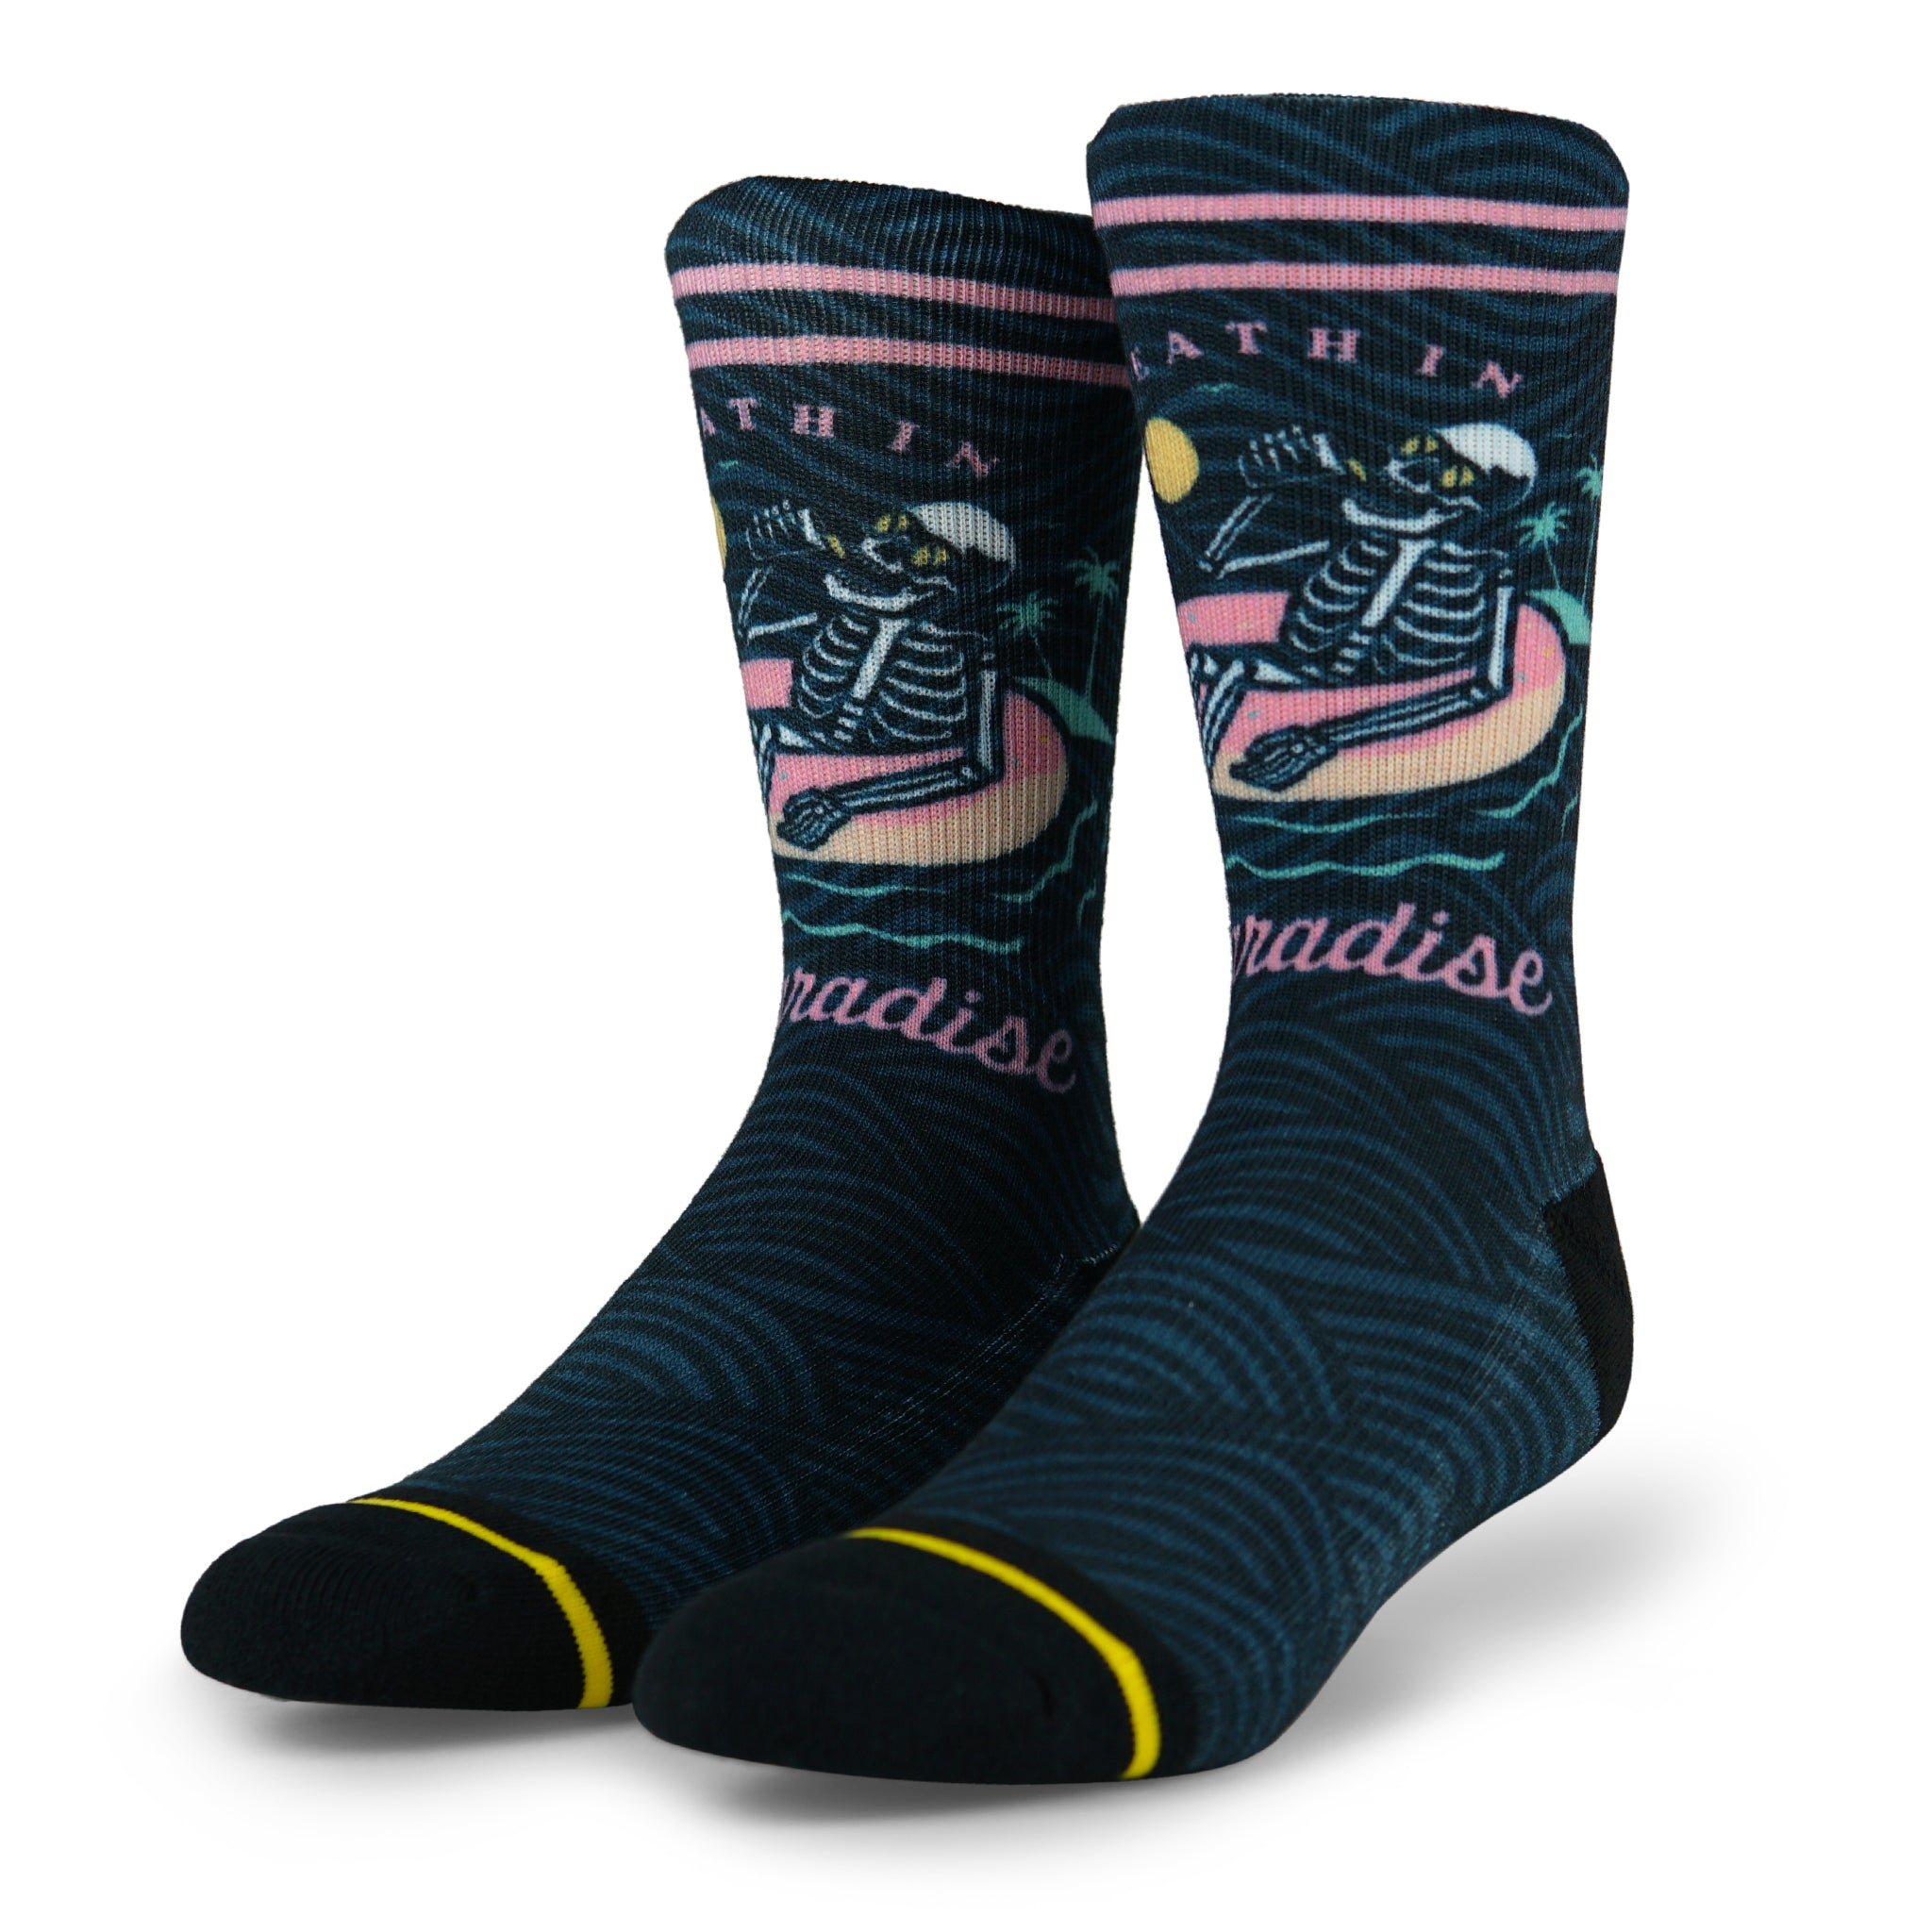 Death In Paradise Socks